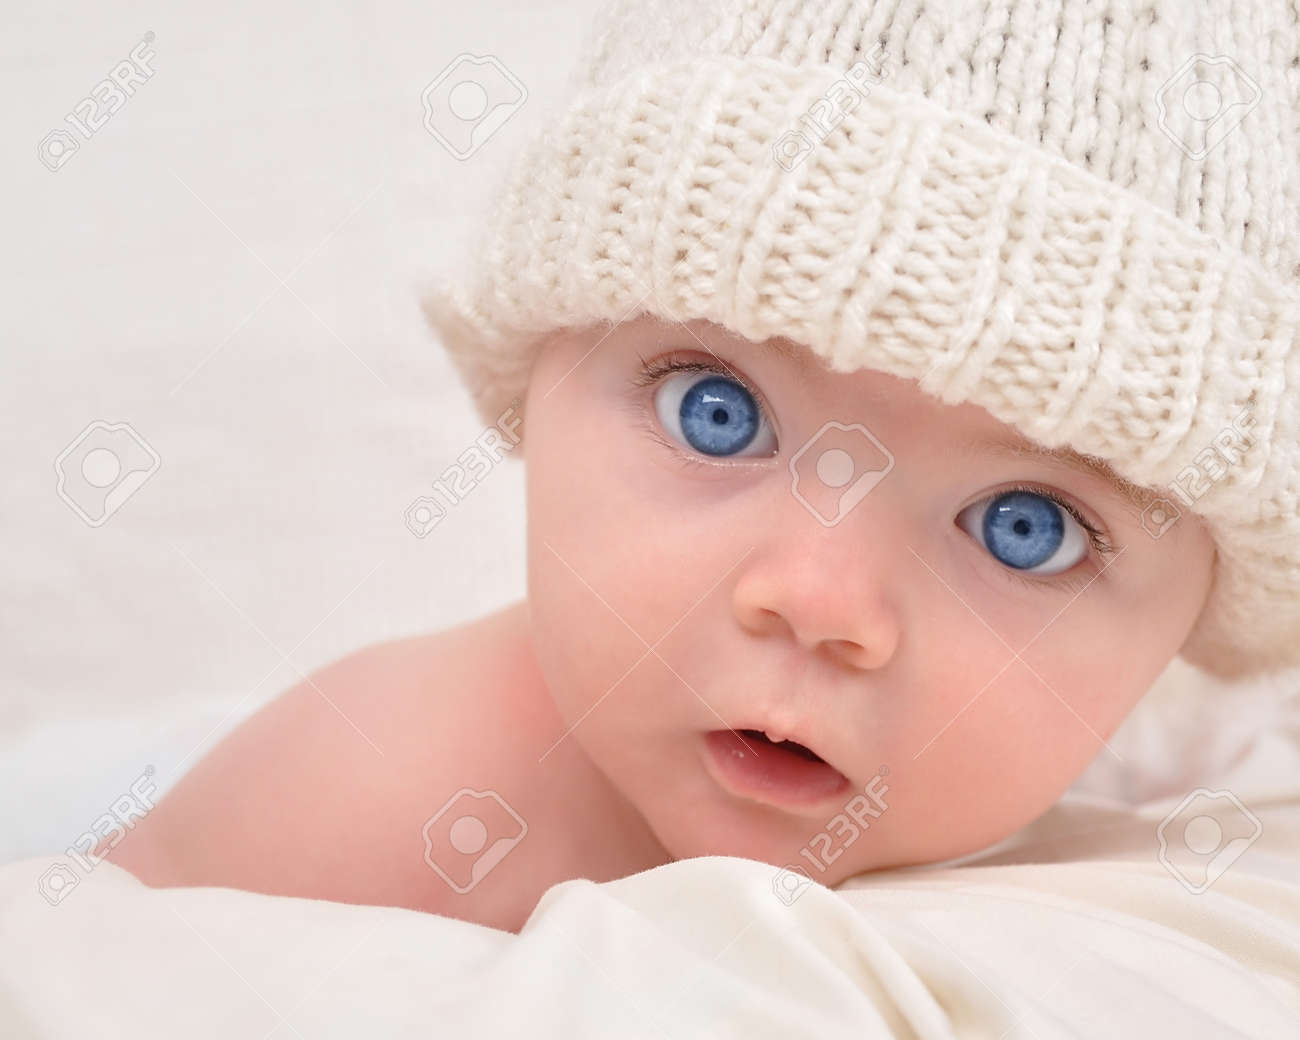 A cute little baby is looking into the camera and is wearing a white hat  The baby could be a boy or girl and has blue eyes  use it for a parenting or love concept Stock Photo - 15125216